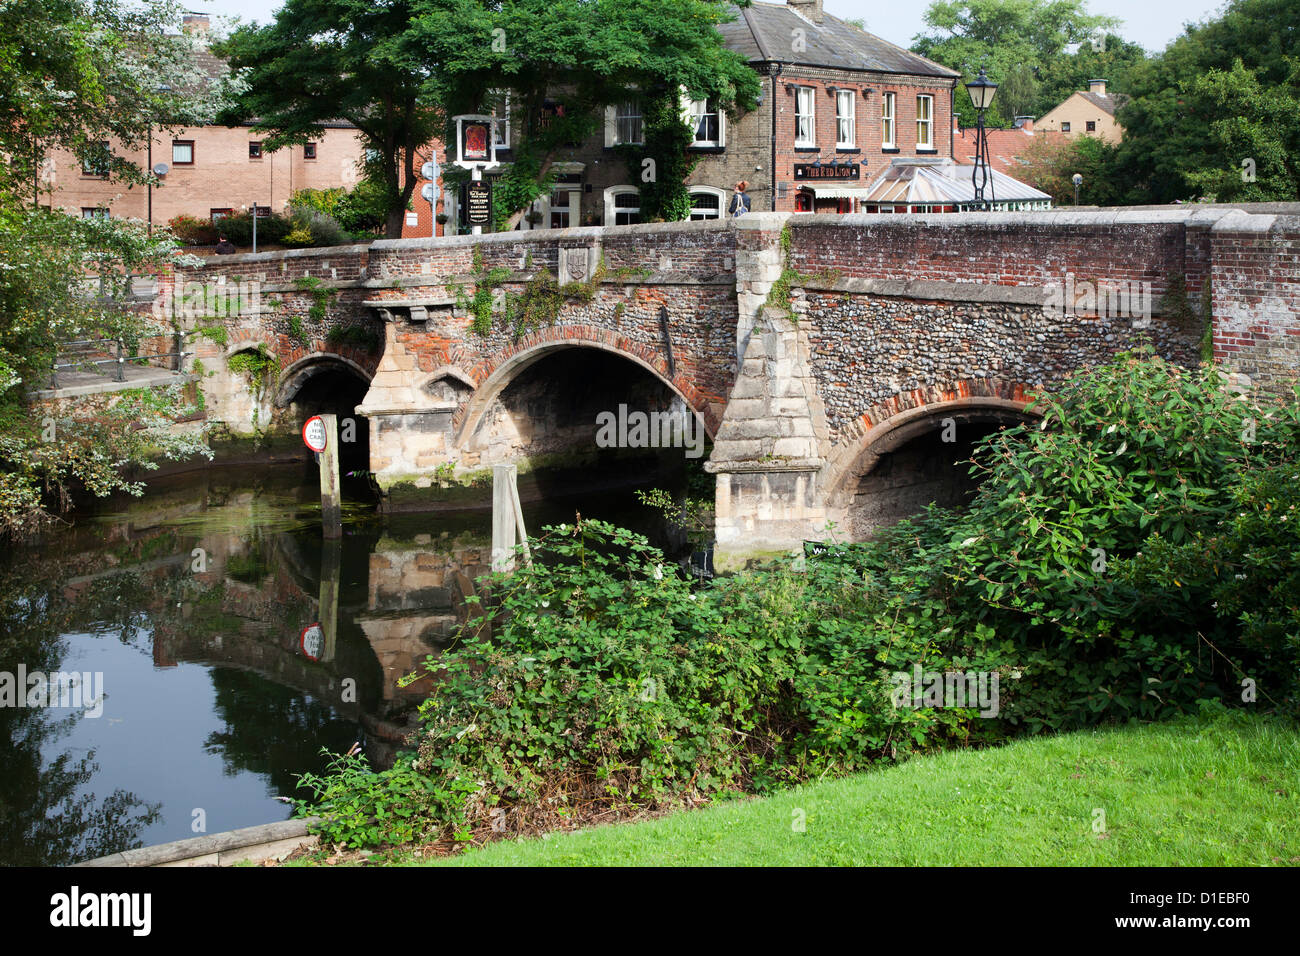 Bishop Bridge over the River Wensum, Norwich, Norfolk, England, United Kingdom, Europe - Stock Image